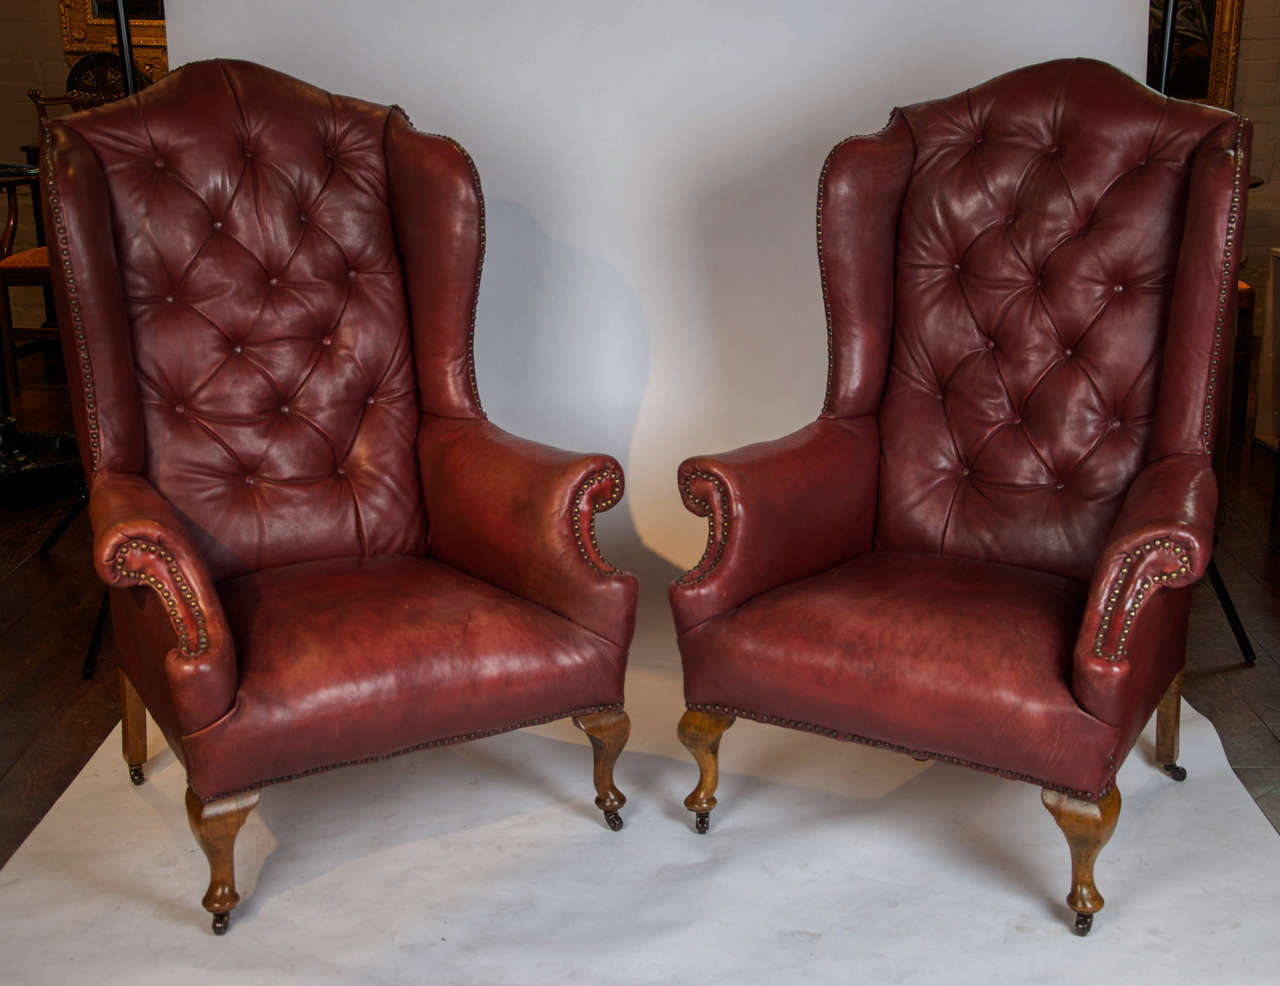 Pair Of Early 20th Century Red Leather Wing Back Chairs At